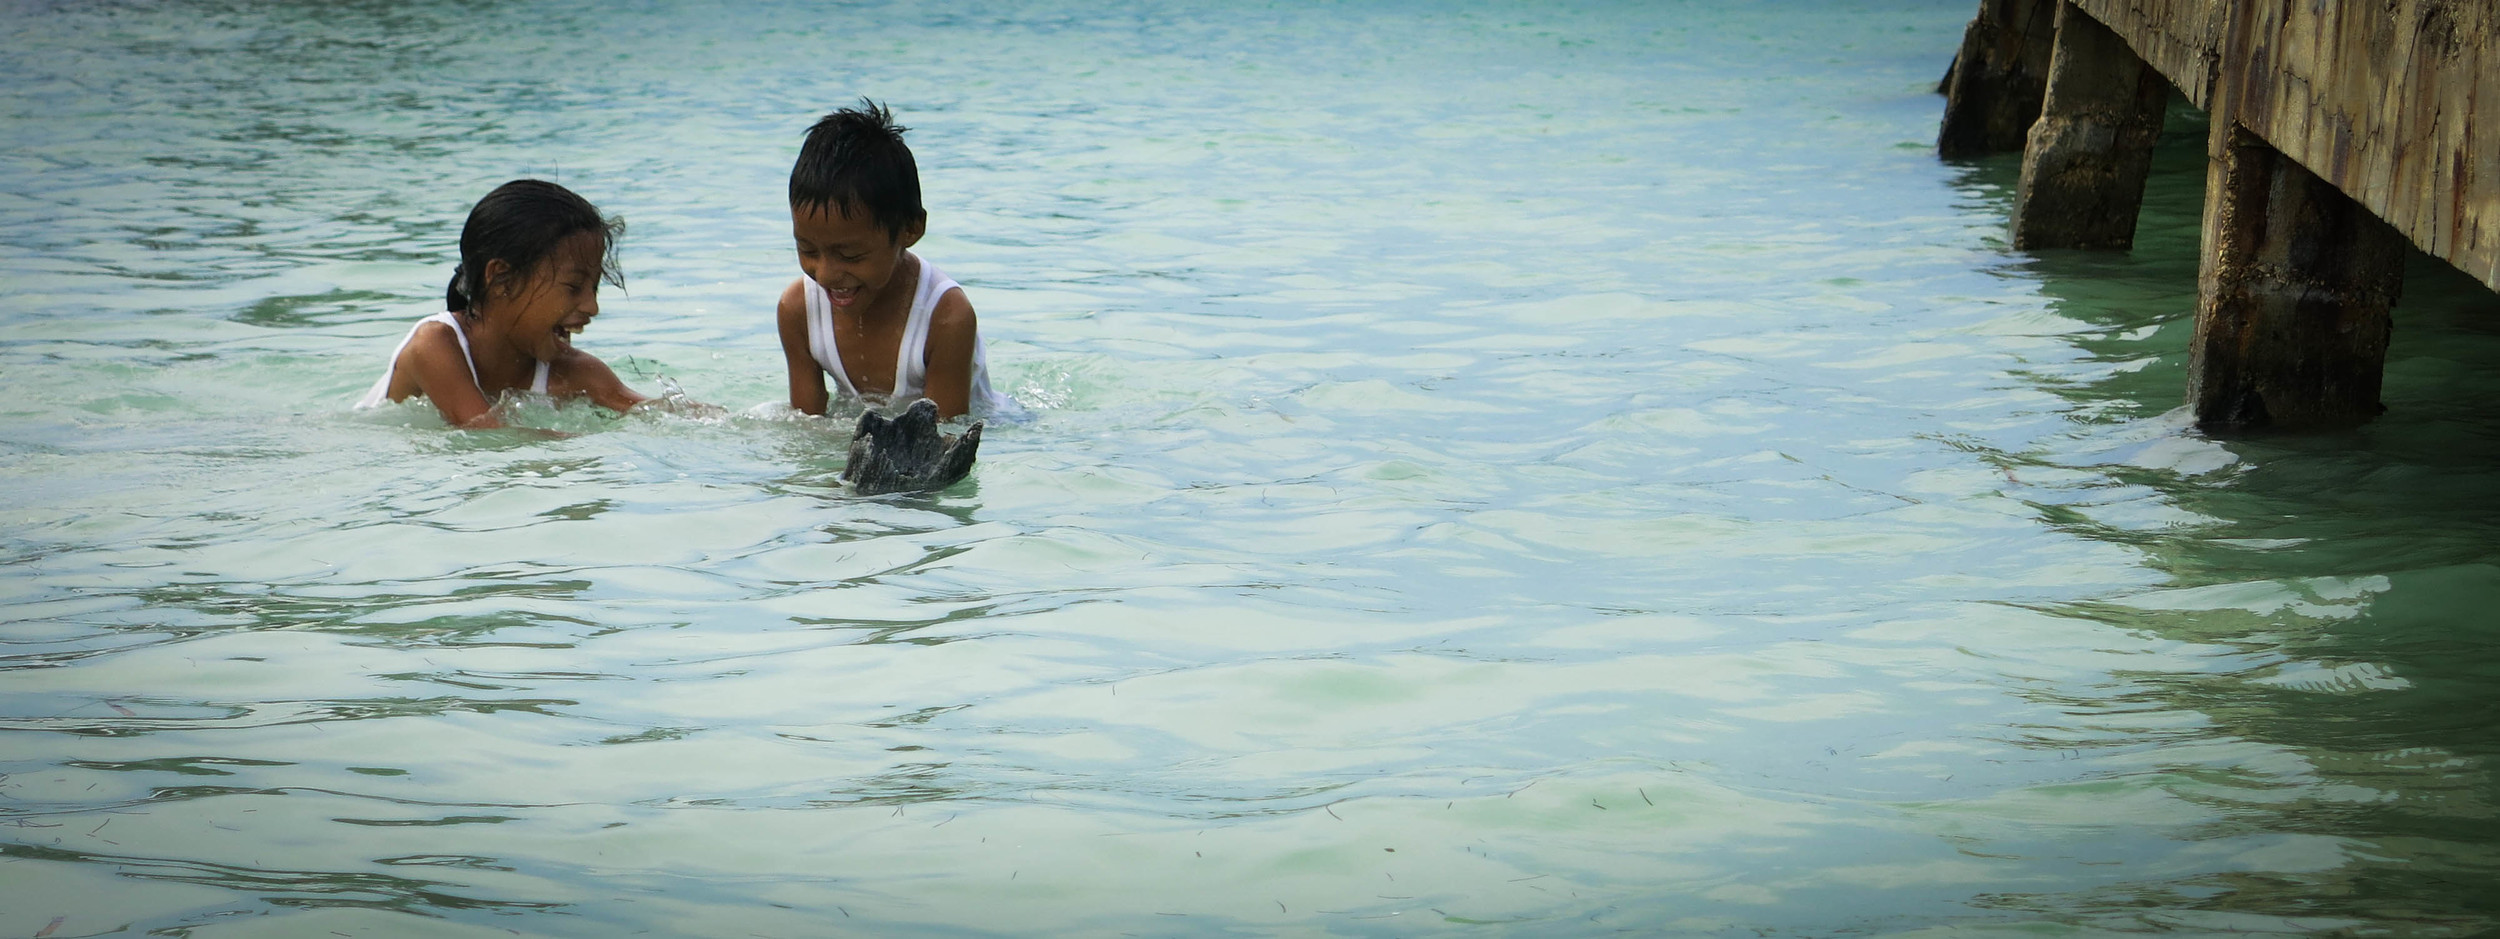 caye caulker children play in ocean